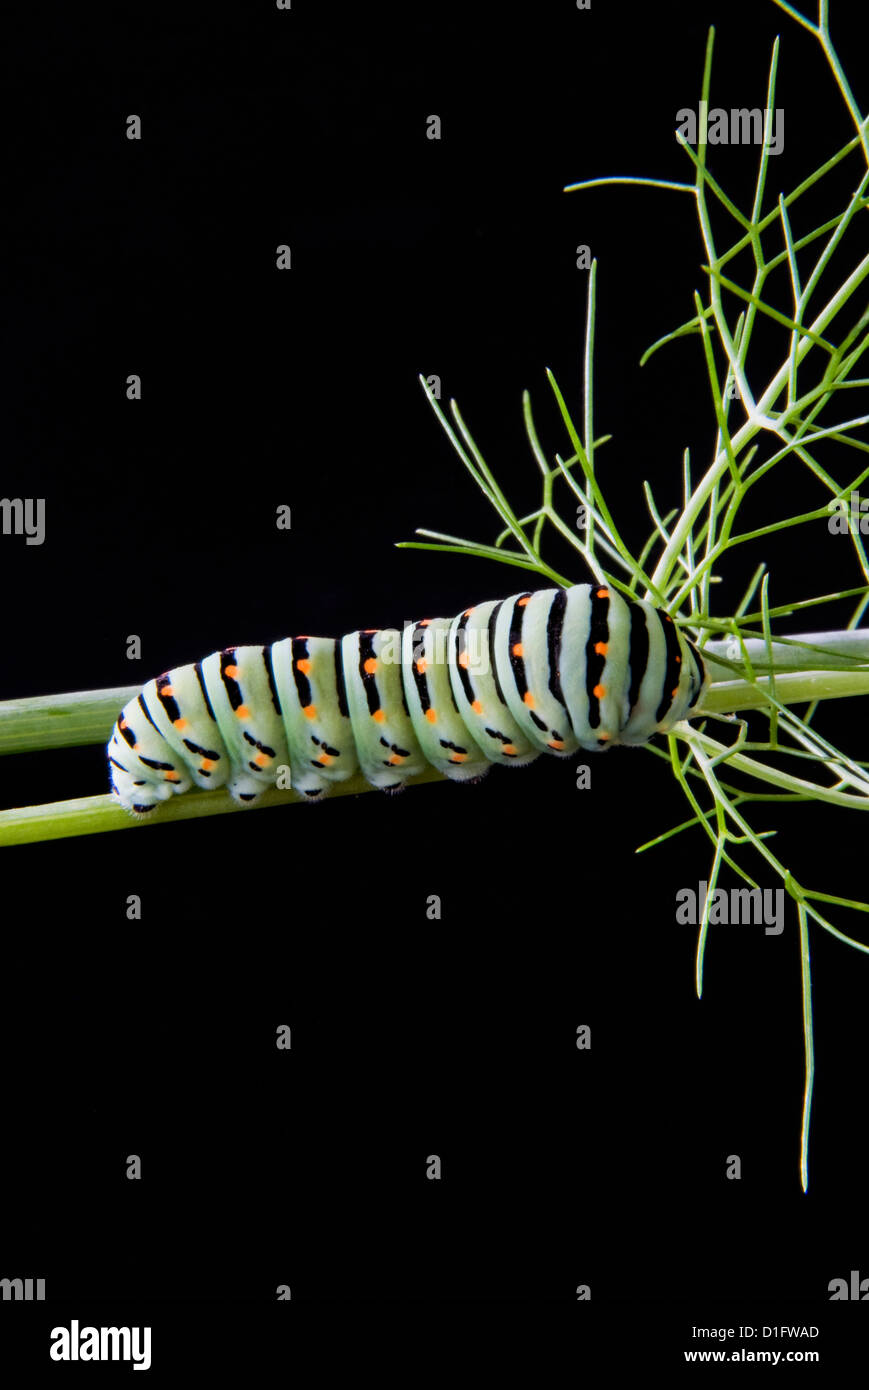 Papilio machaon larva, butterfly of the family Papilionidae, Italy, Europe - Stock Image